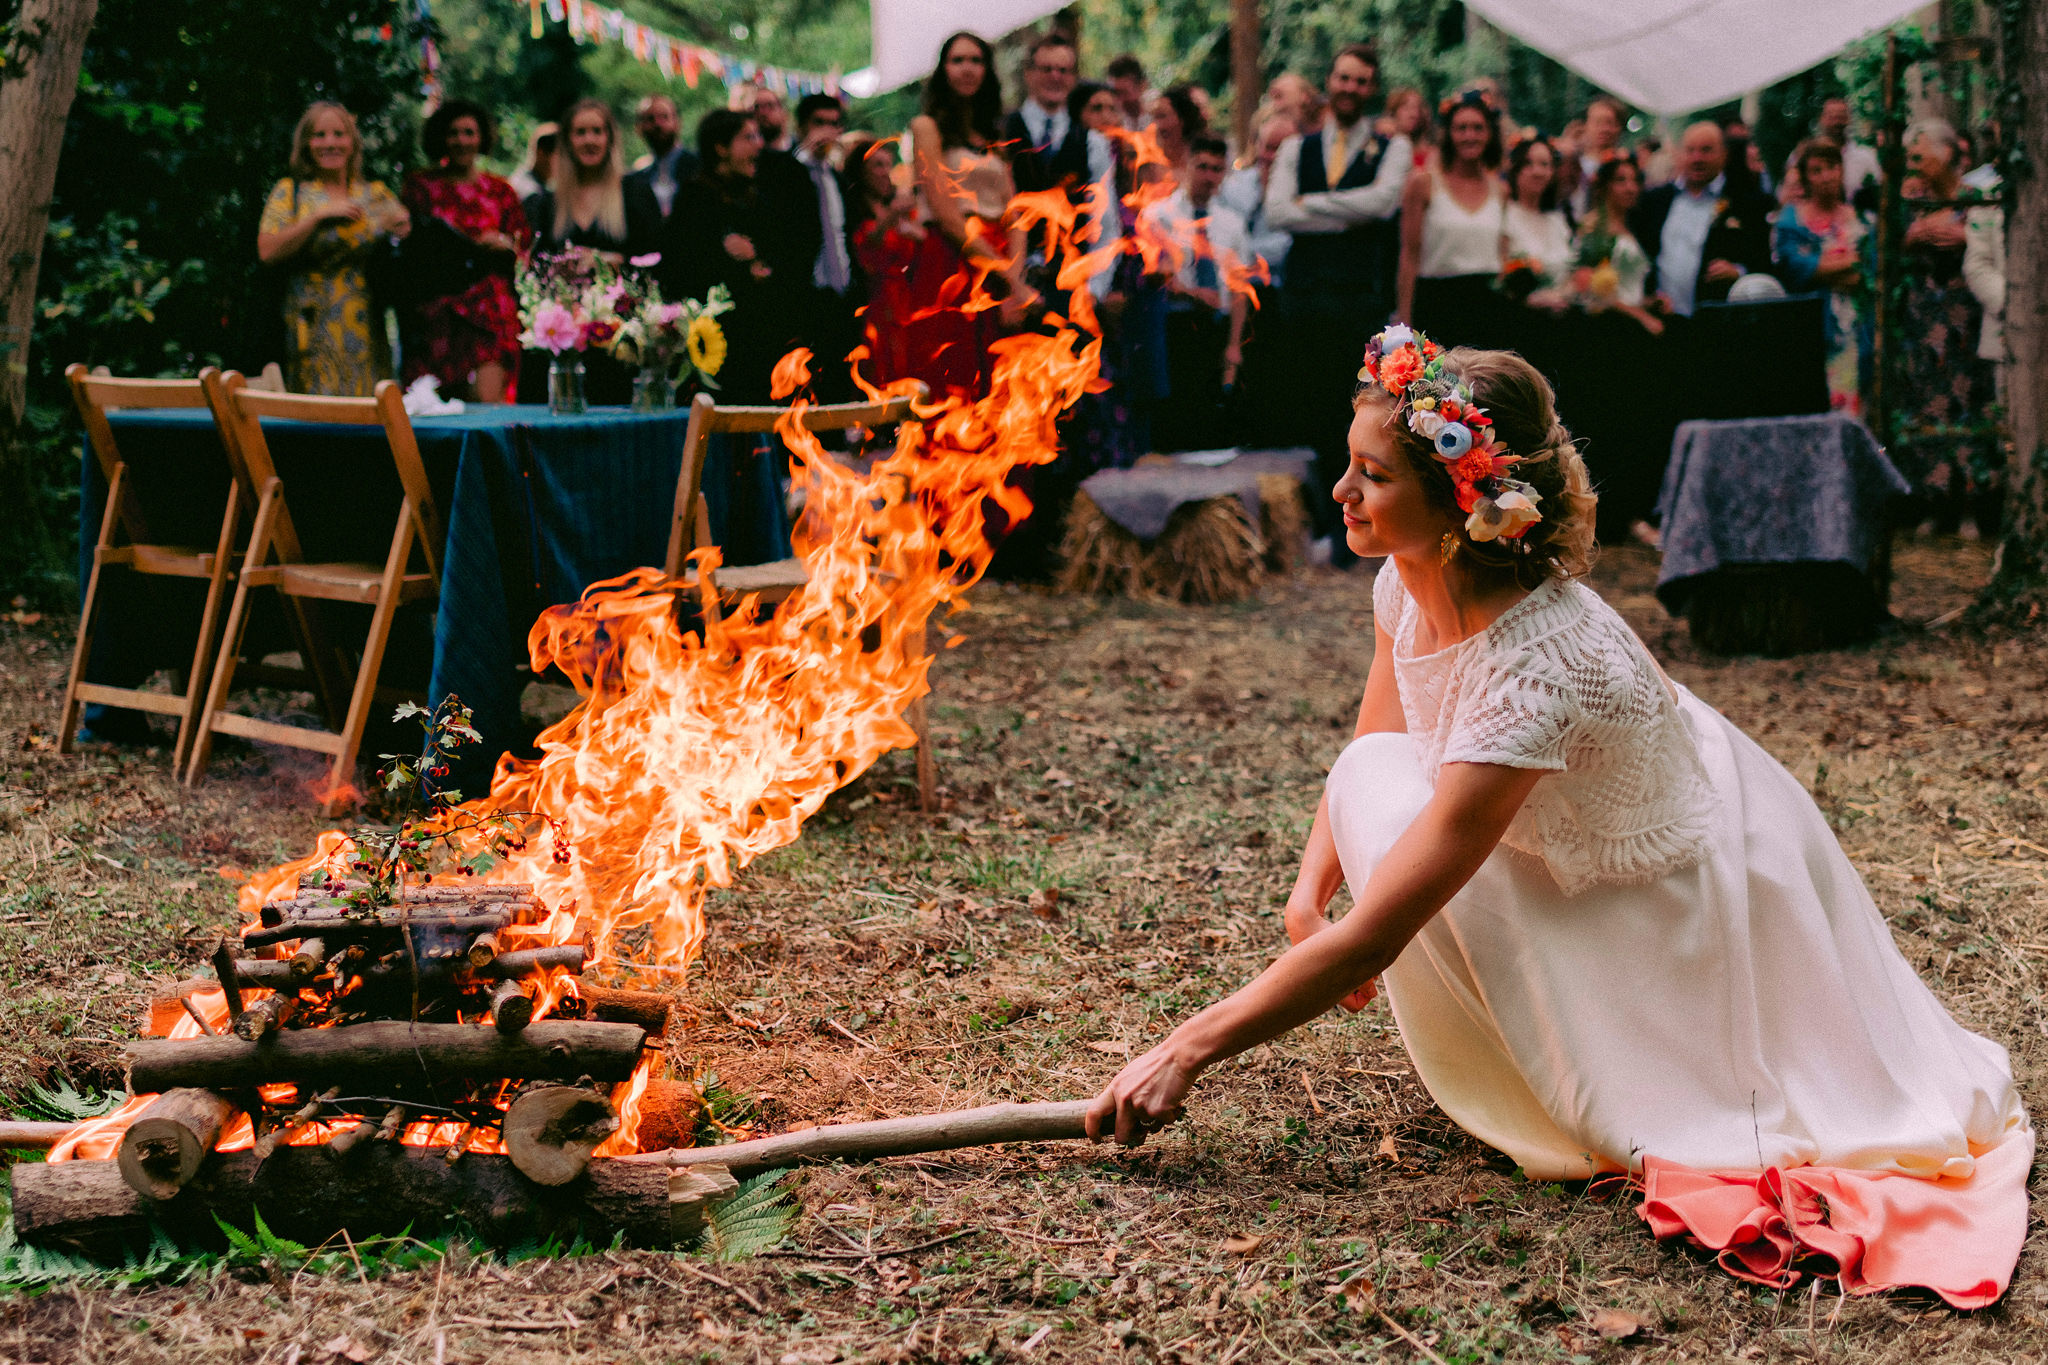 Boho bride with floral crown stoking outdoor fire - photo by Rich Howman